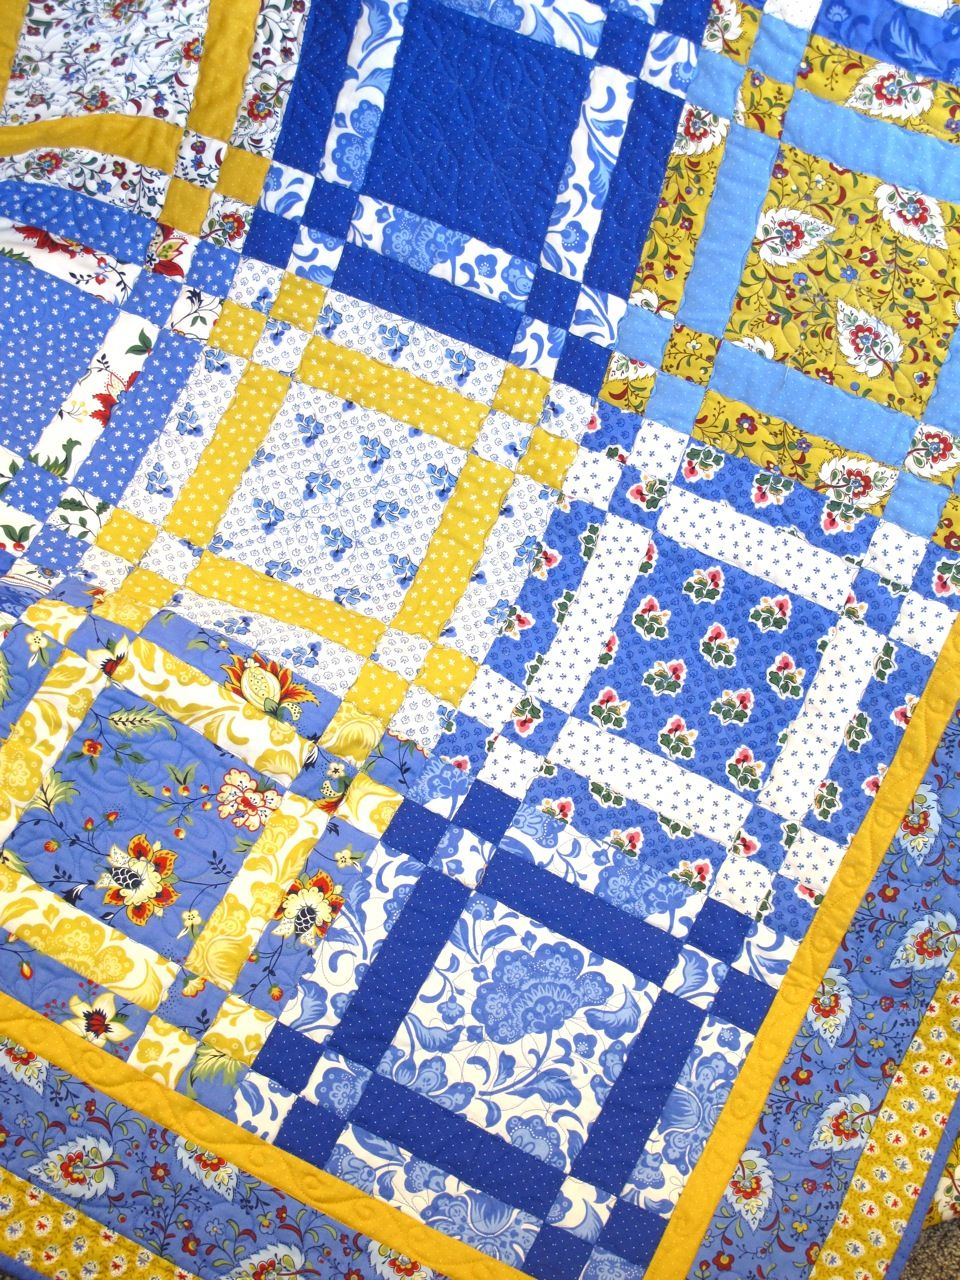 Www Hollyhillquilts Com Image Display Quilts Yellow Quilts Colorful Quilts